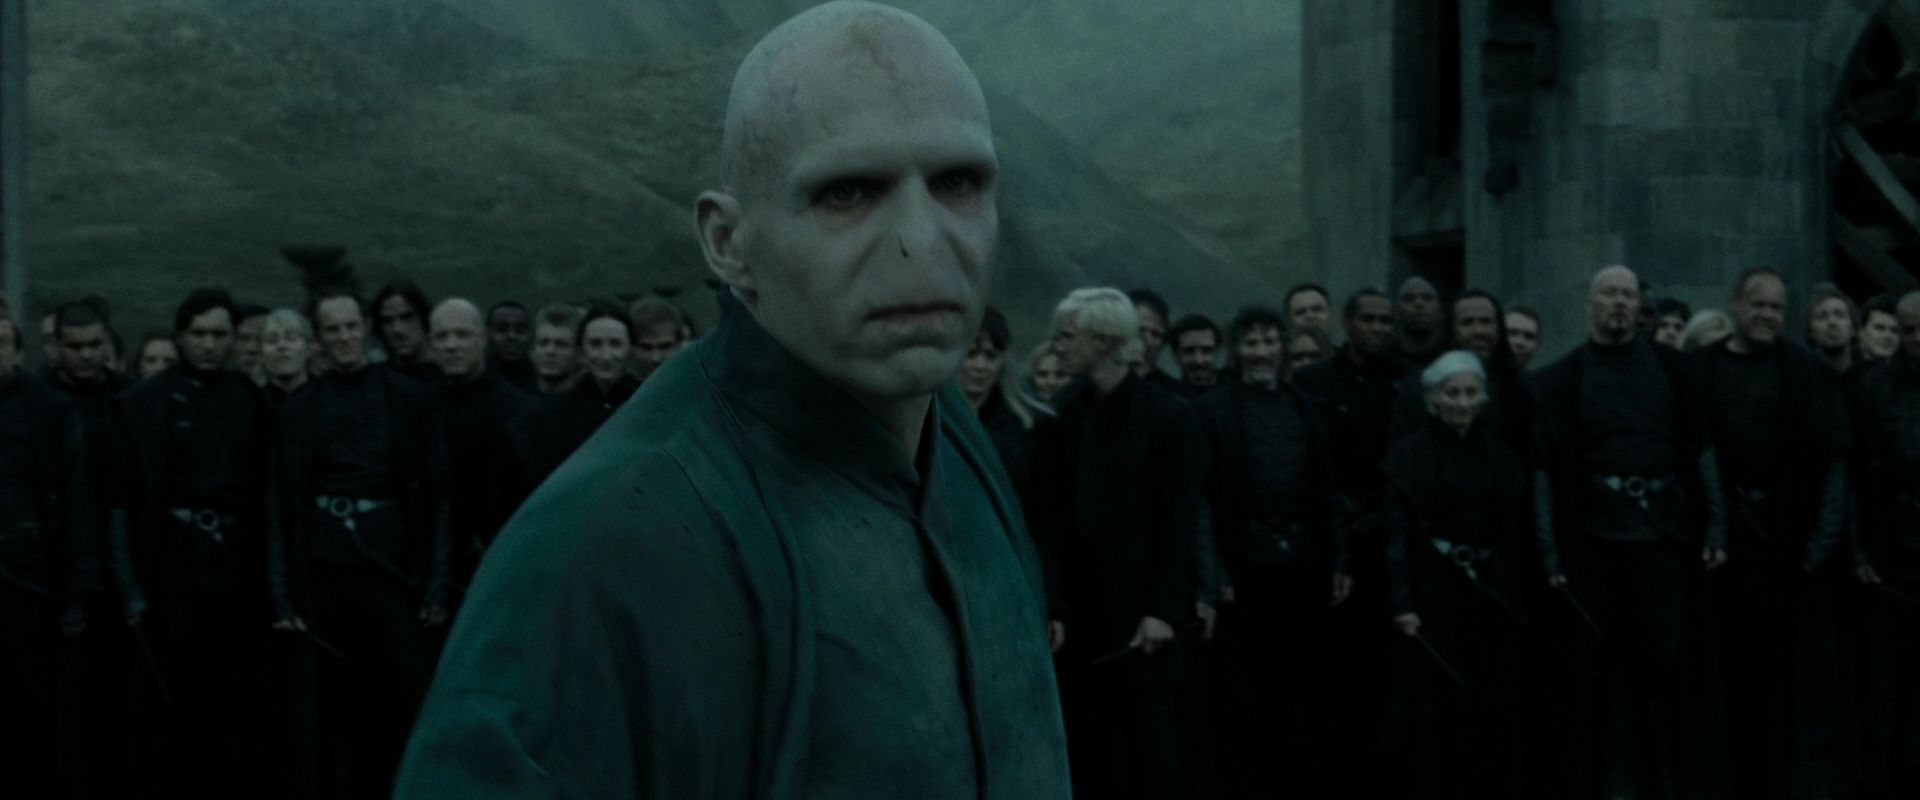 https://i2.wp.com/images5.fanpop.com/image/photos/26600000/HP-DH-part-2-lord-voldemort-26625086-1920-800.jpg